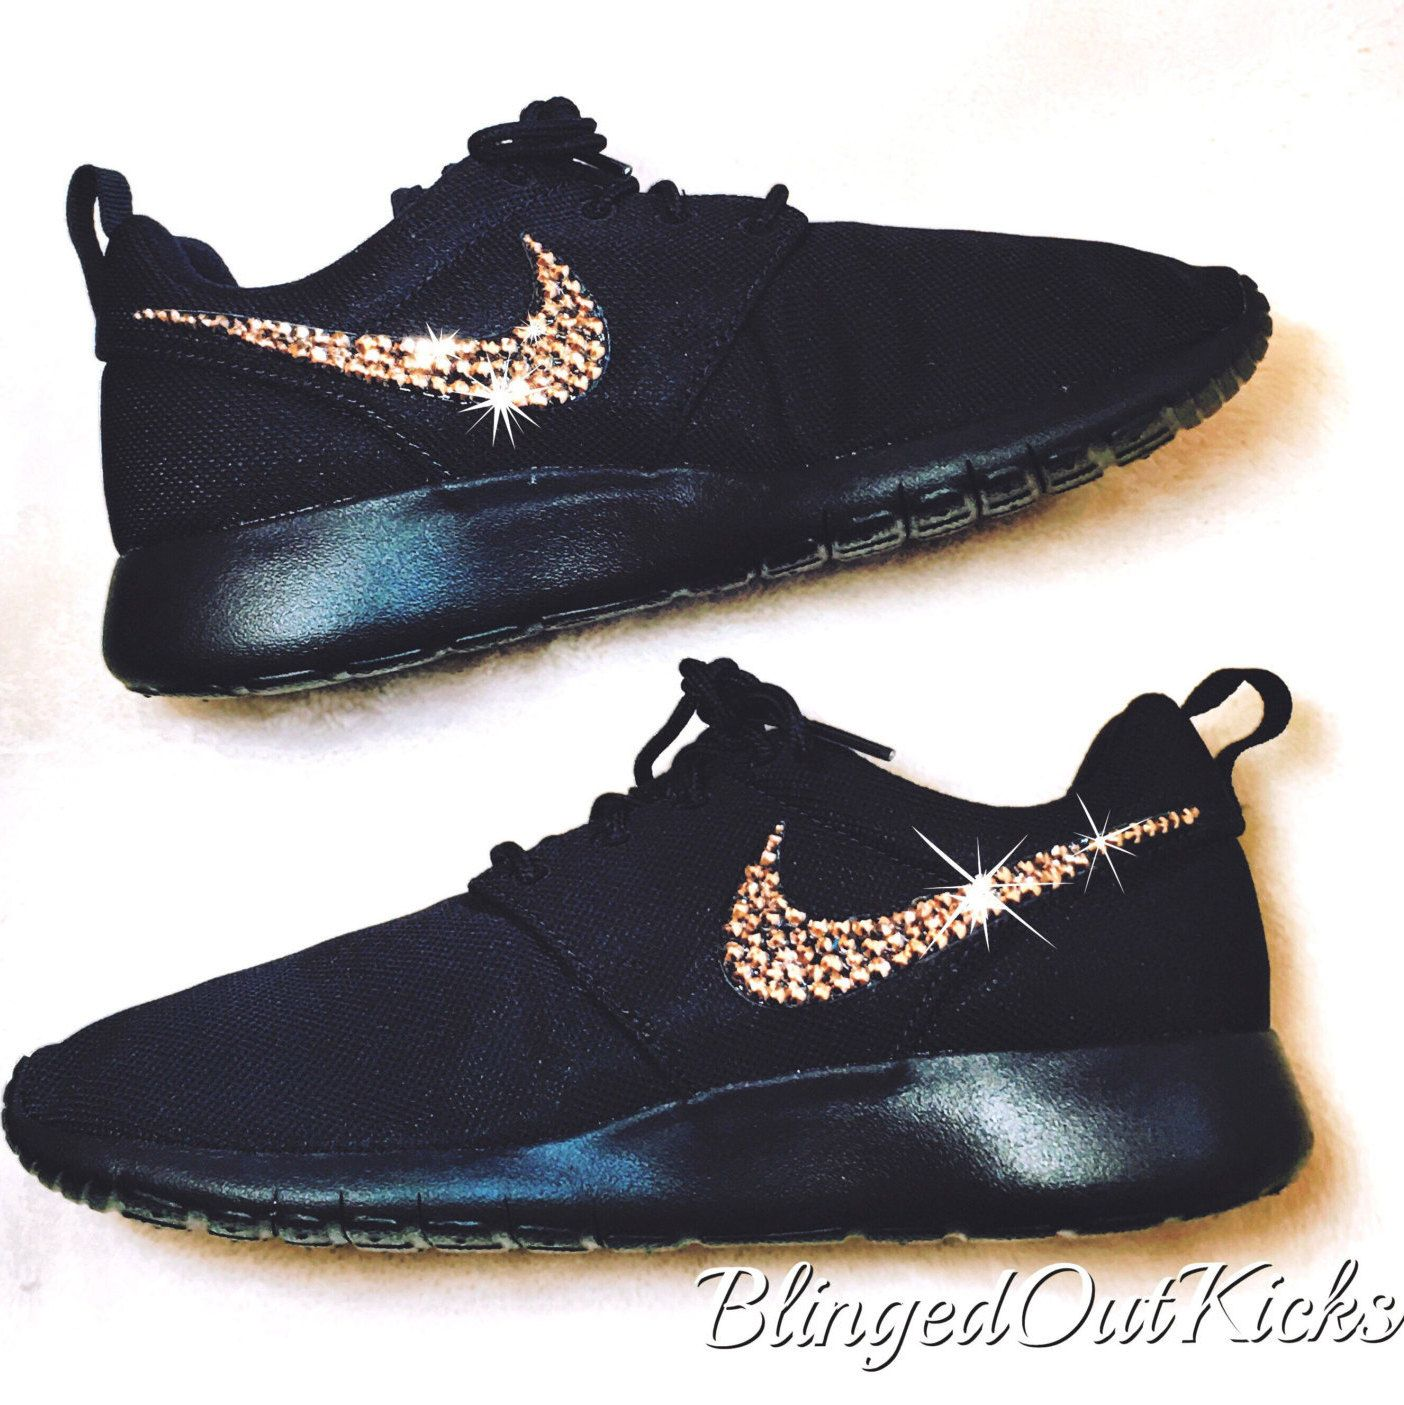 official photos d094f a91df Women s Bling Nike Roshe Two in all Black with Rose gold Swarovski crystal  detail by ShopBlingedOutKicks on Etsy